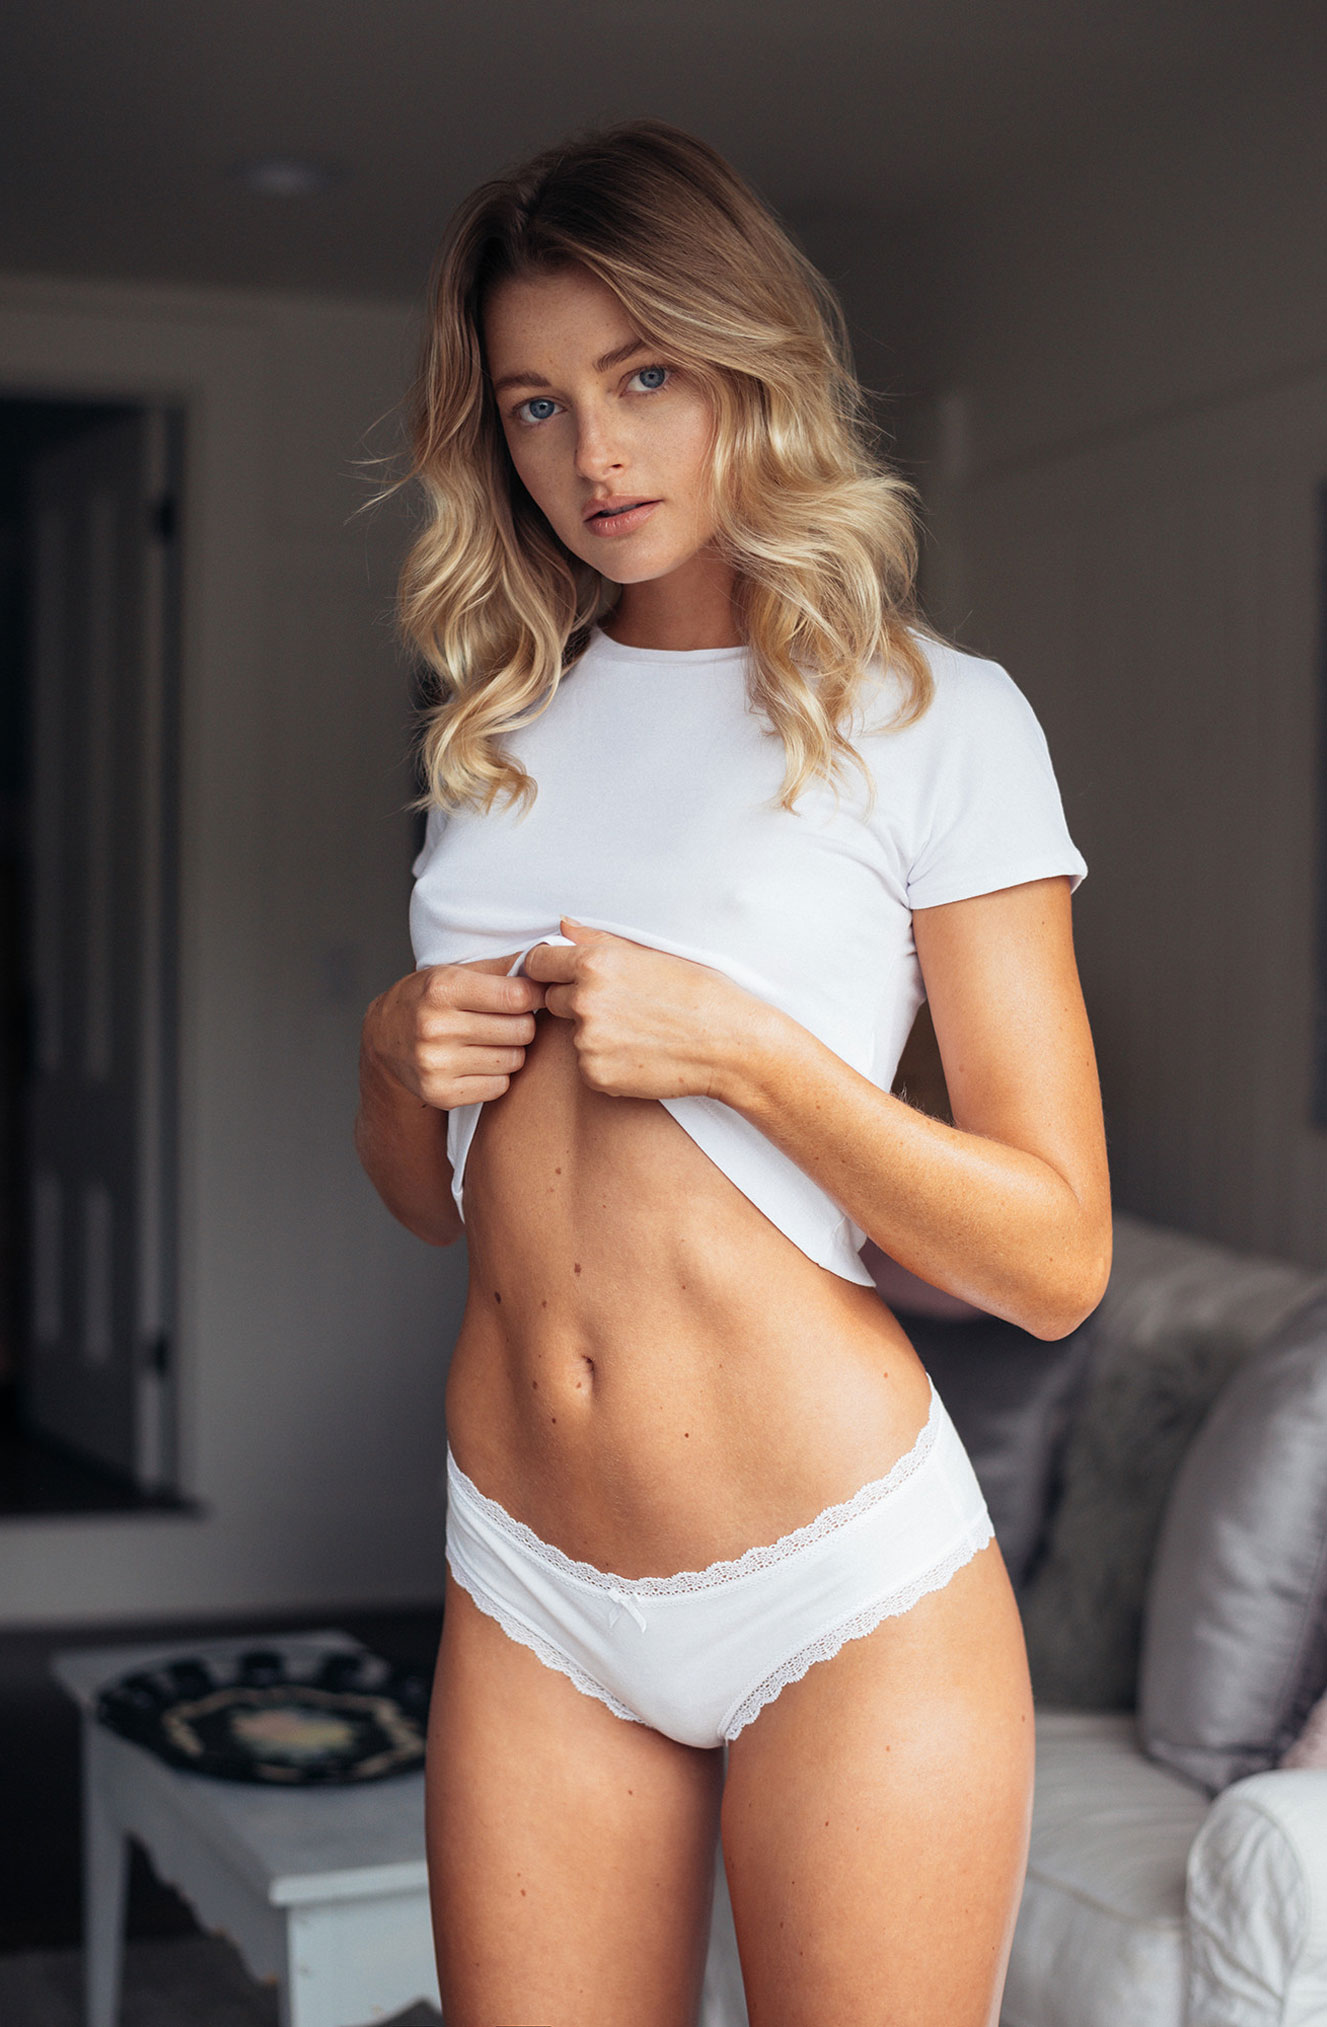 Miss February 2018 / Megan Samperi by Christopher von Steinbach / Playboy USA january-february 2018